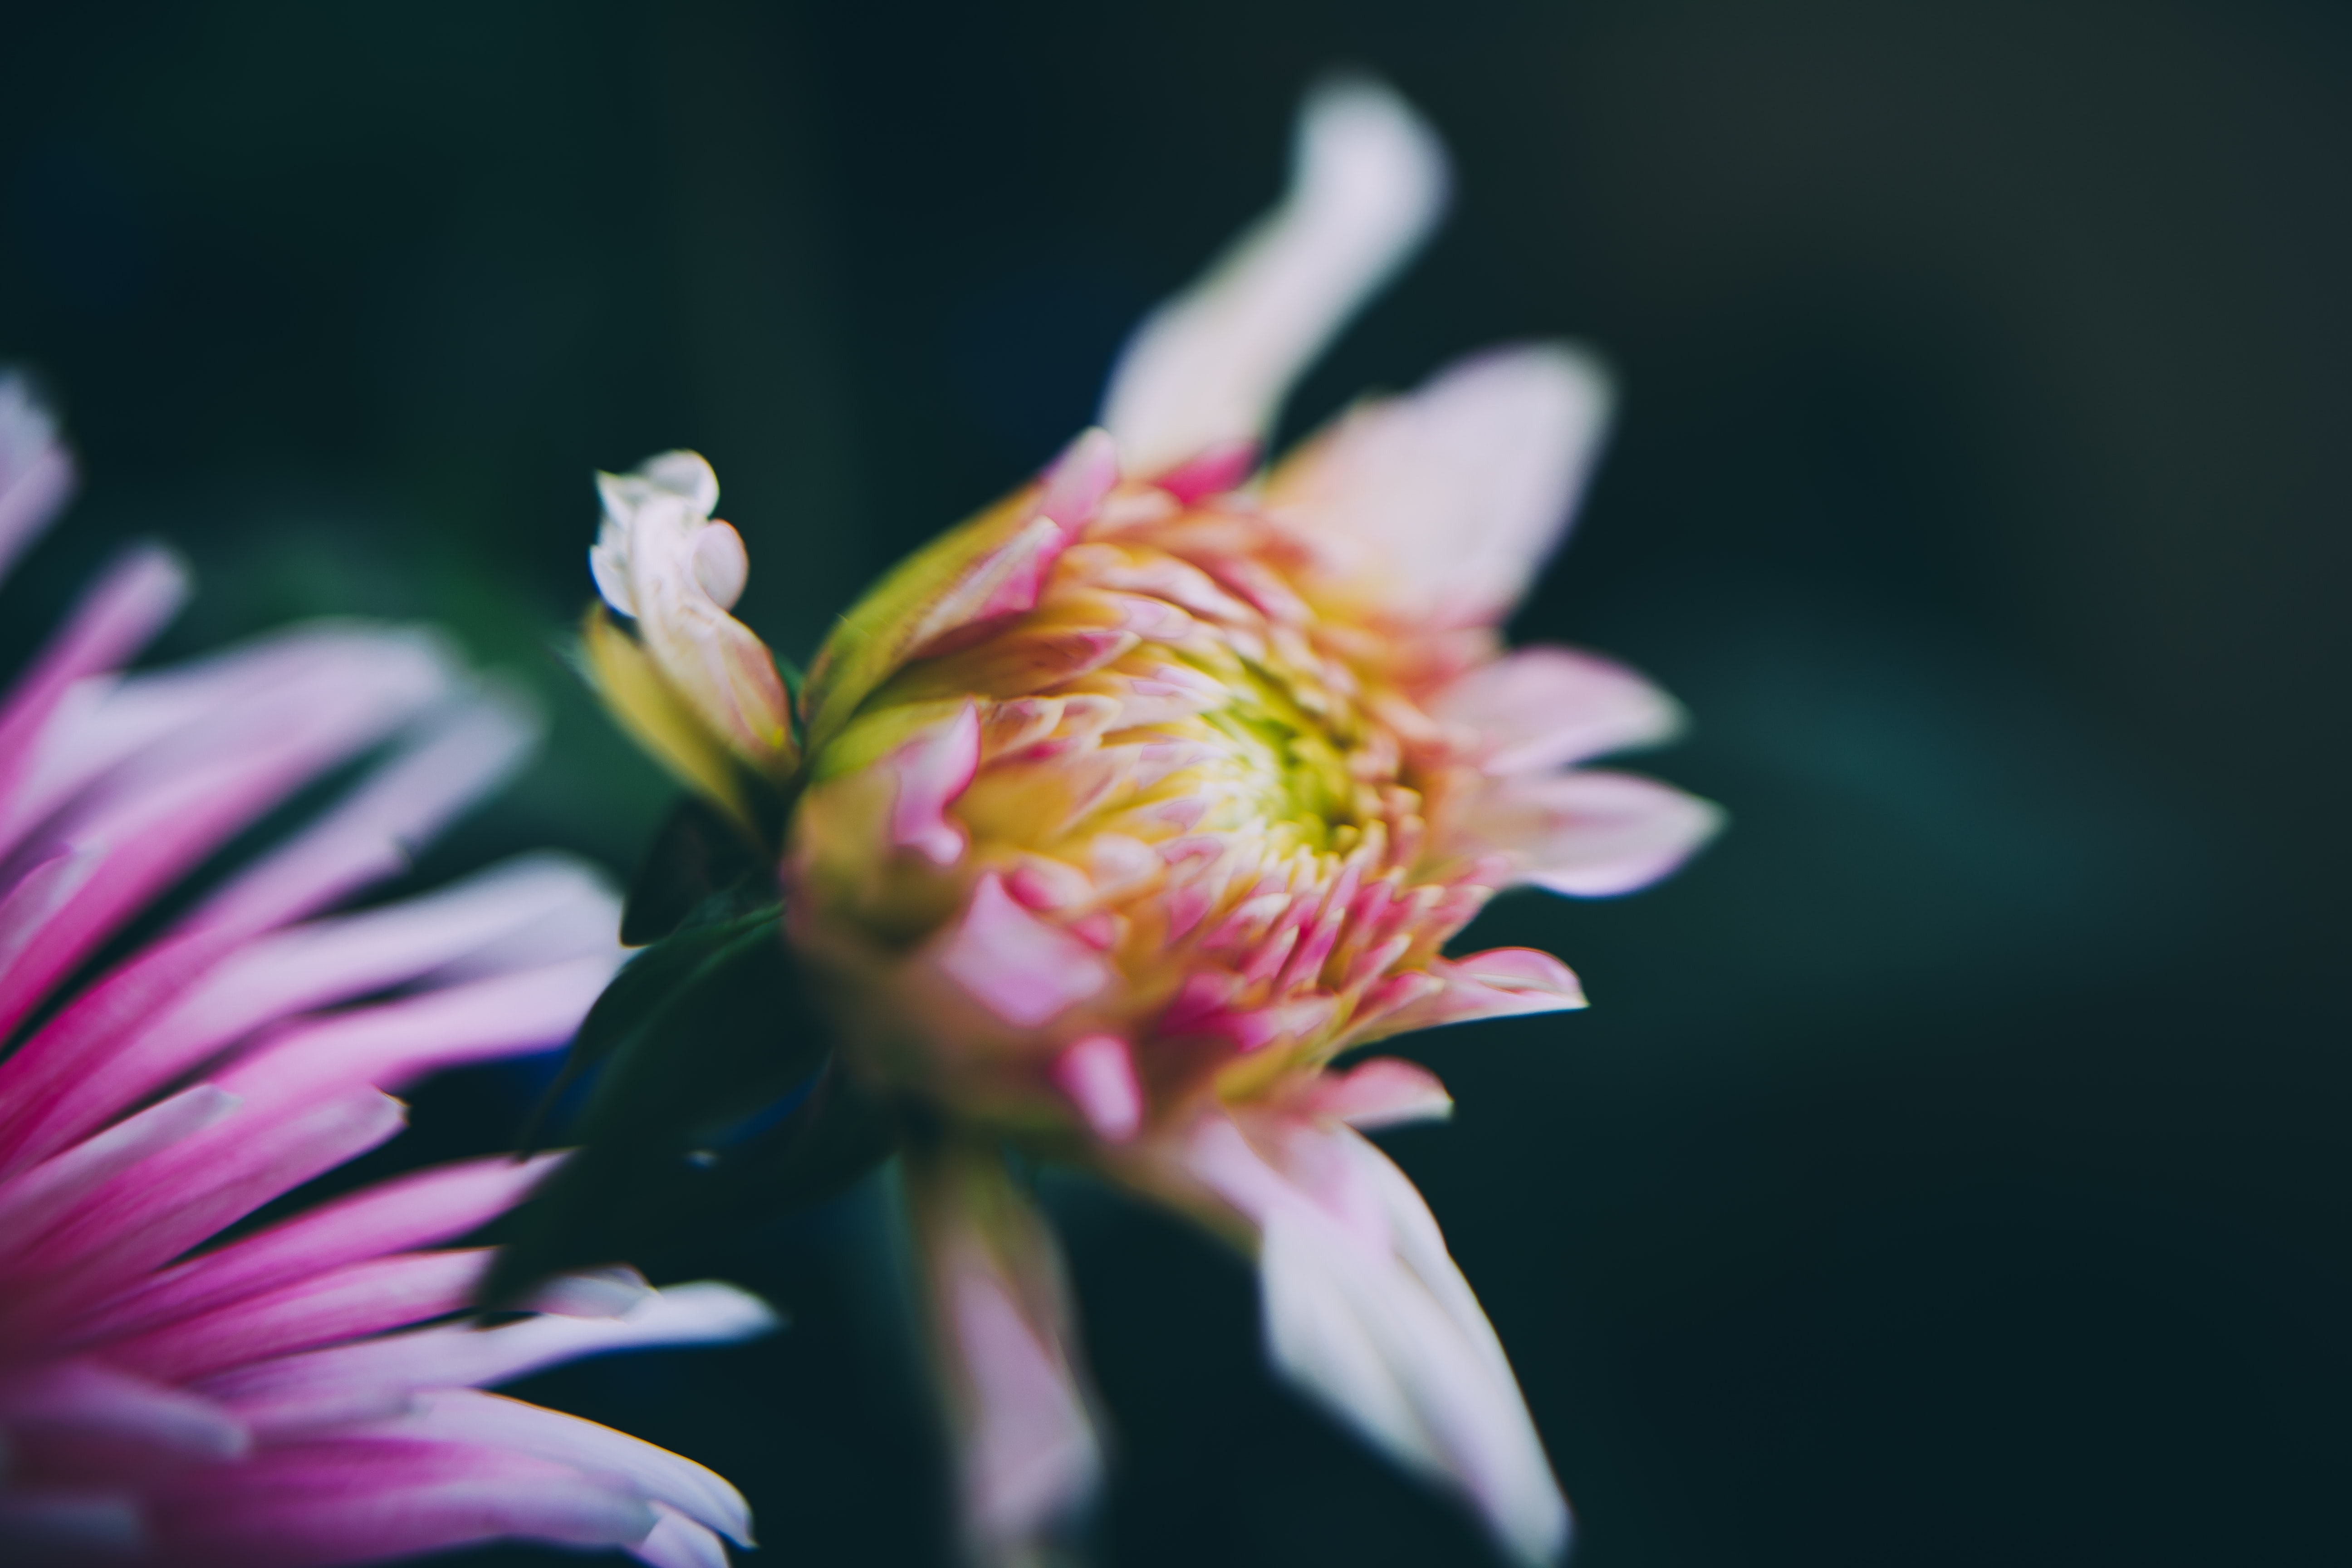 A blurry shot of a half-closed white and pink flower against a dark background